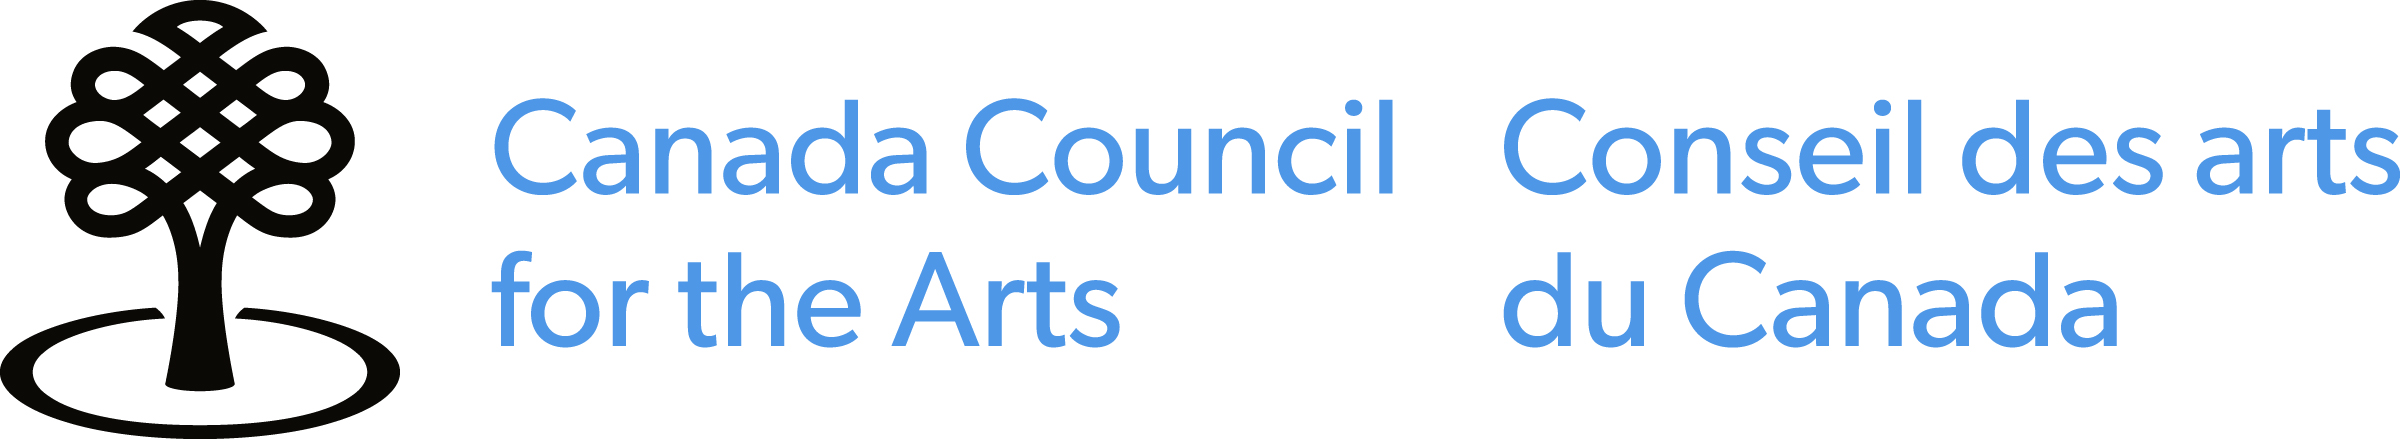 LOGO of canada council for the arts